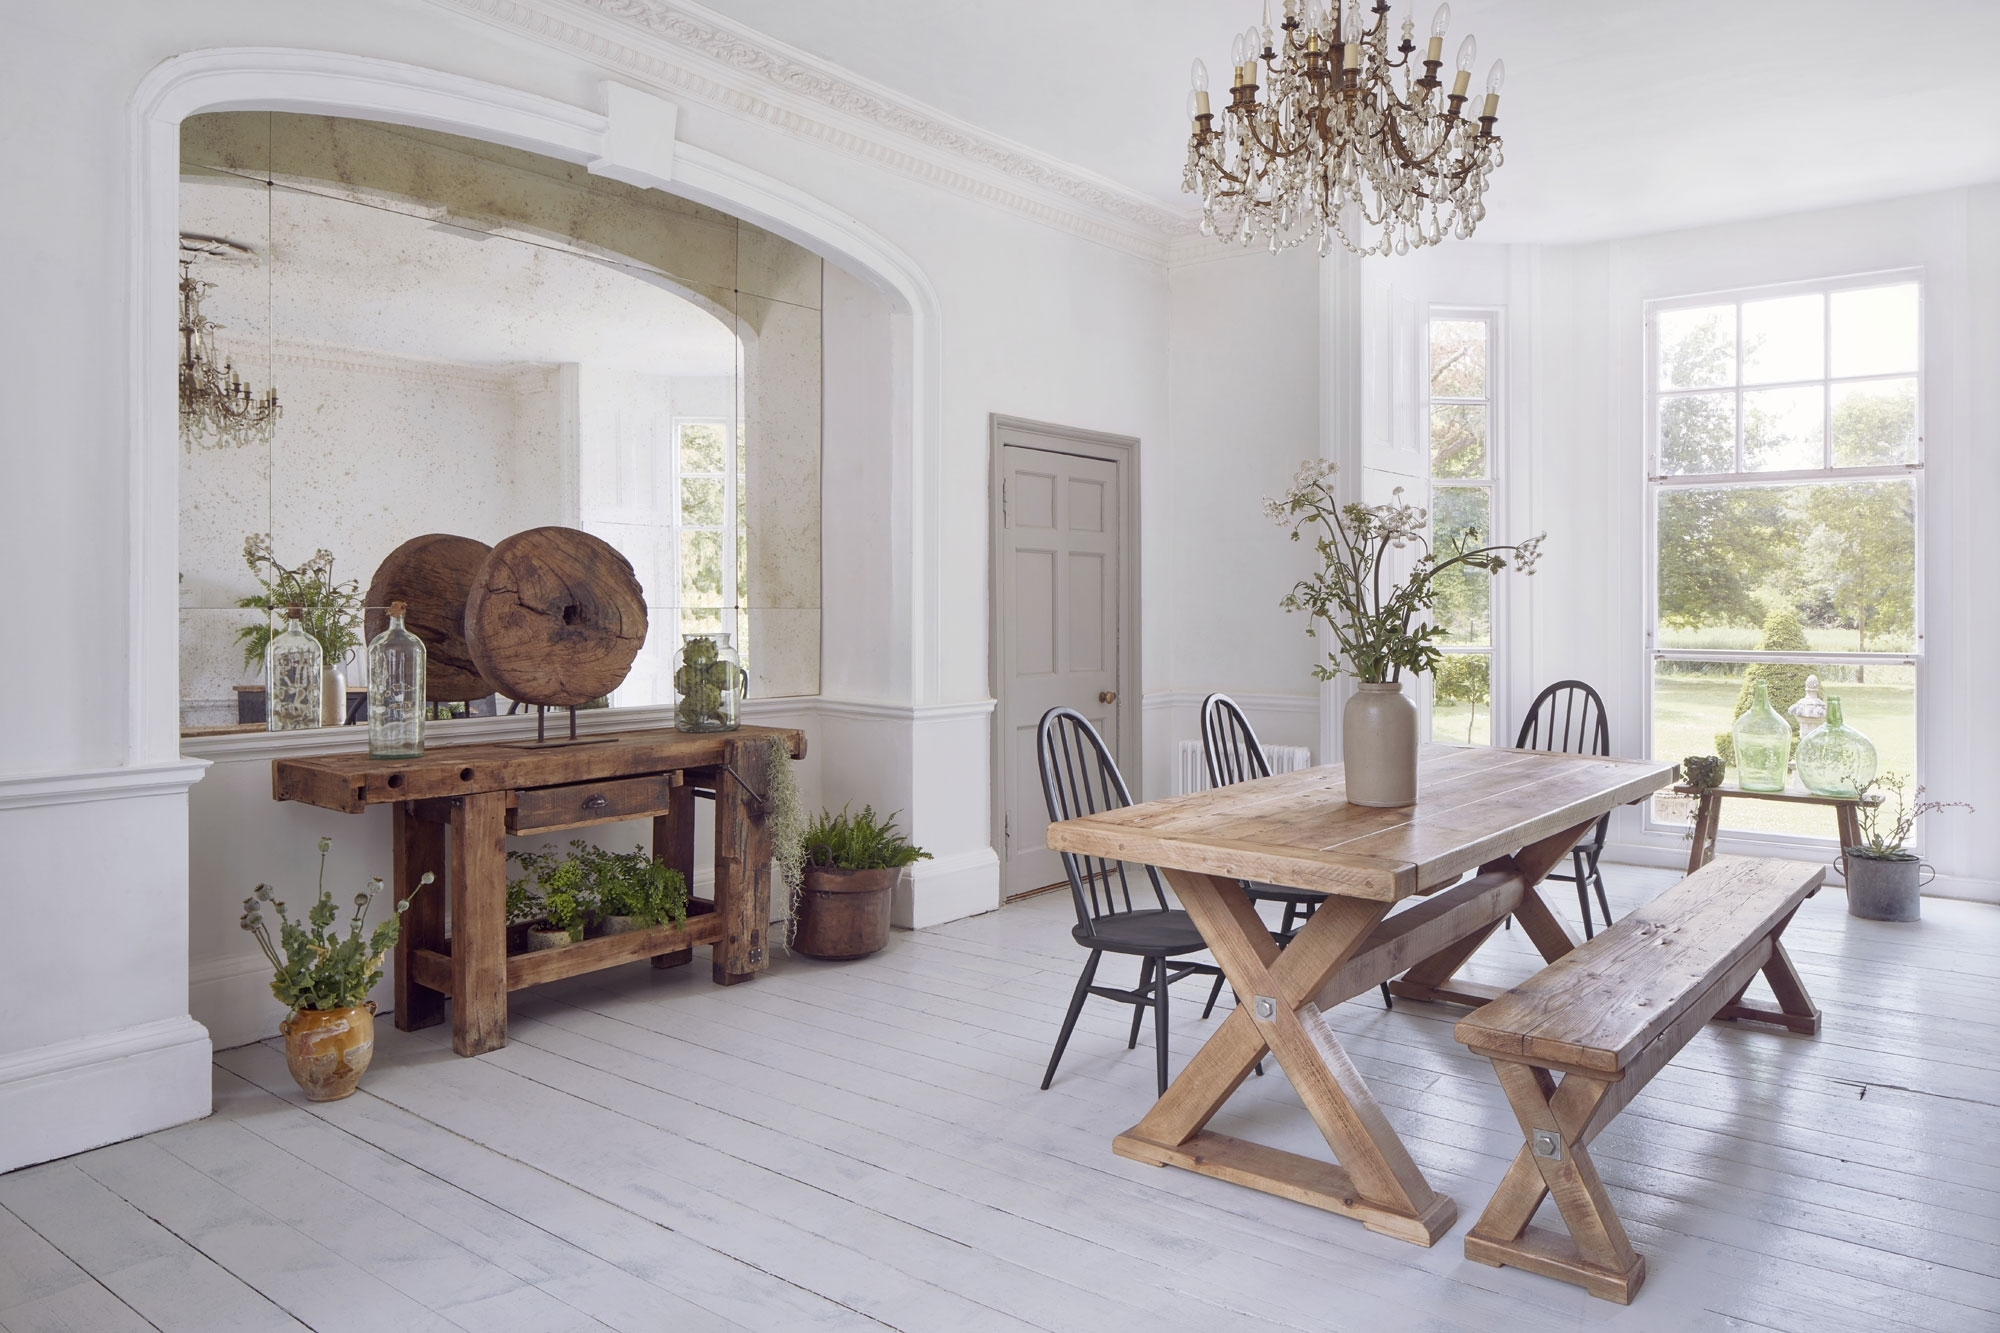 Barn House Dining Tables Pertaining To Well Liked Reclaimed Wood Plank Trestle Dining Table (View 14 of 25)